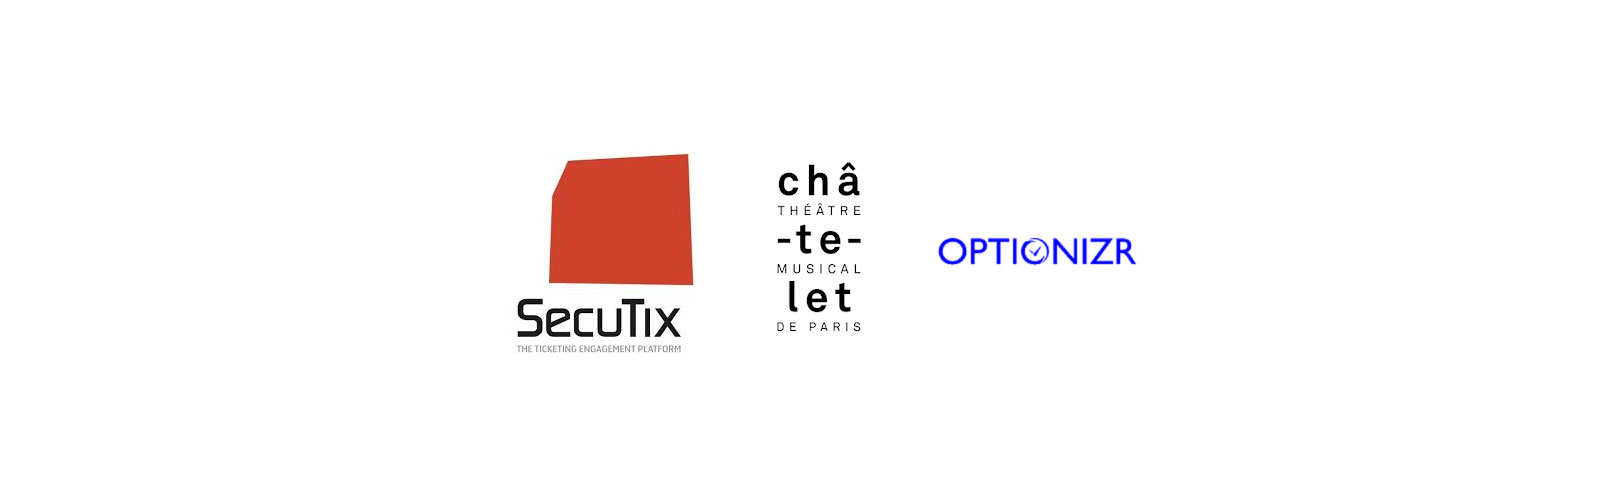 secutix-chatelet-optionizr